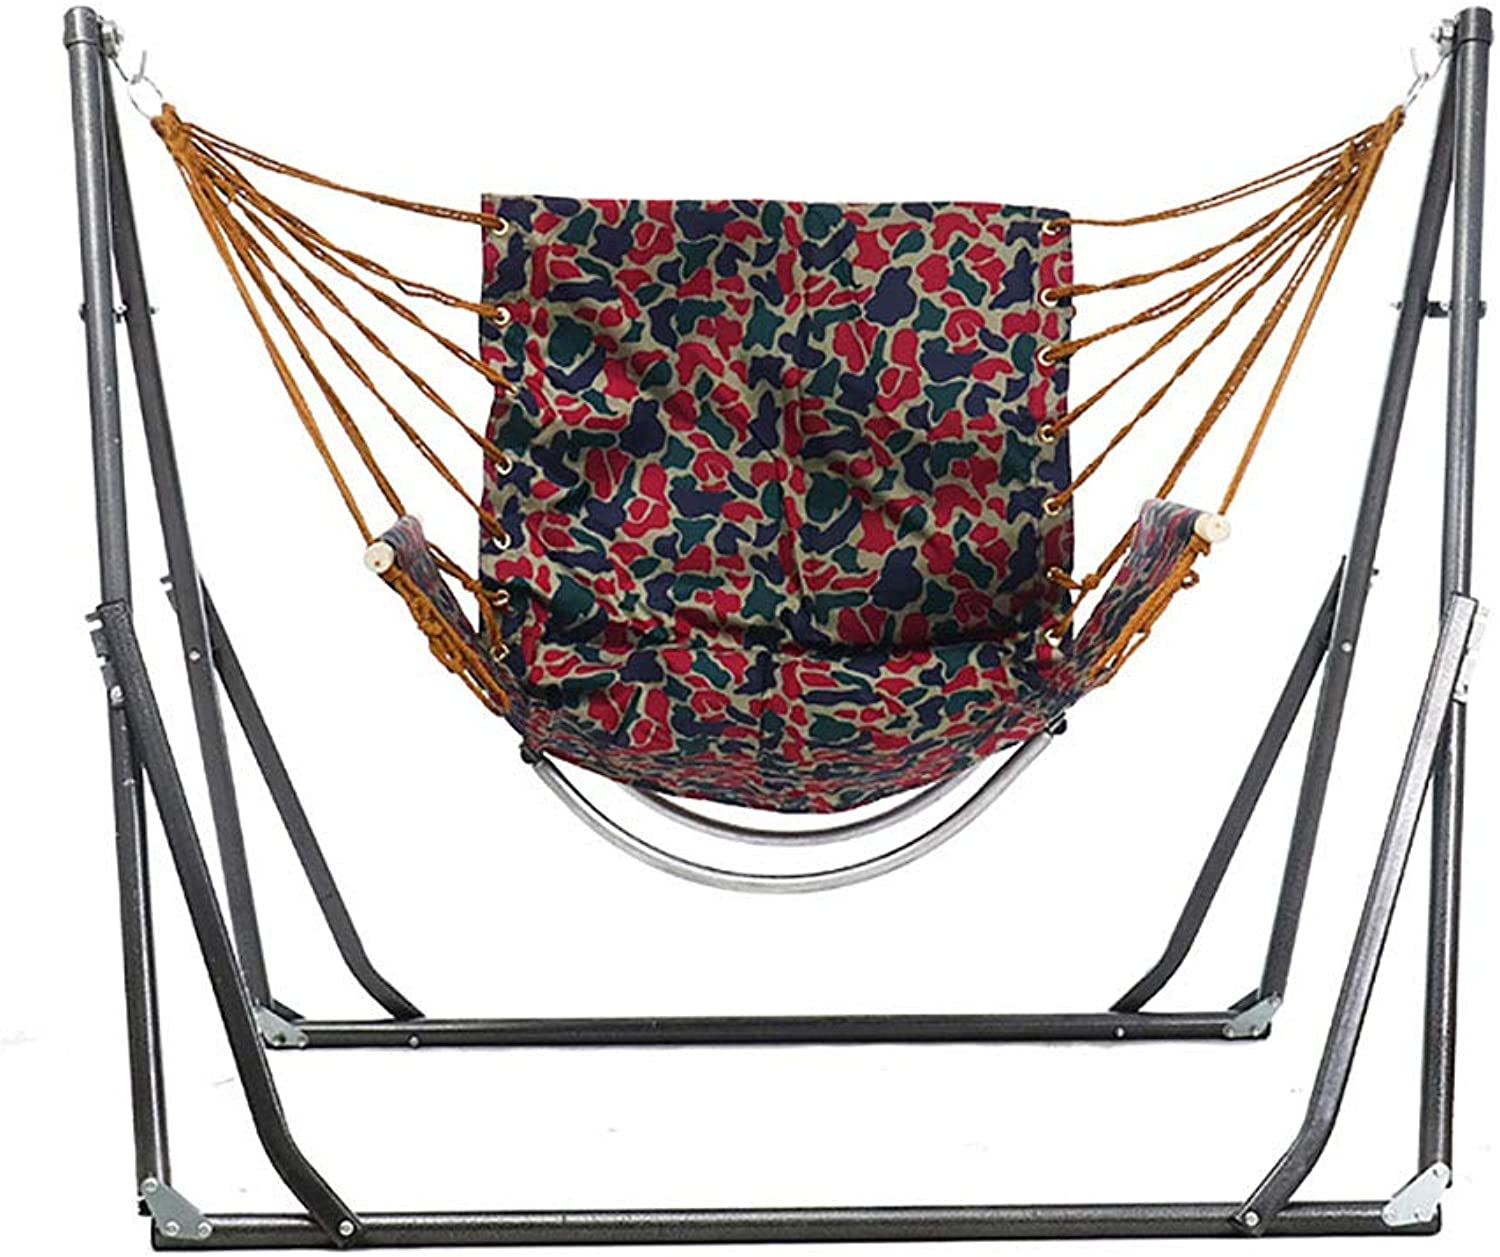 Single Cotton Hammock, Frame Hammock, Maximum Load Capacity of About 200 kg, Foldable Anti-ogreenurning Swing, Outdoor, Garden, Park, Beach, Camping